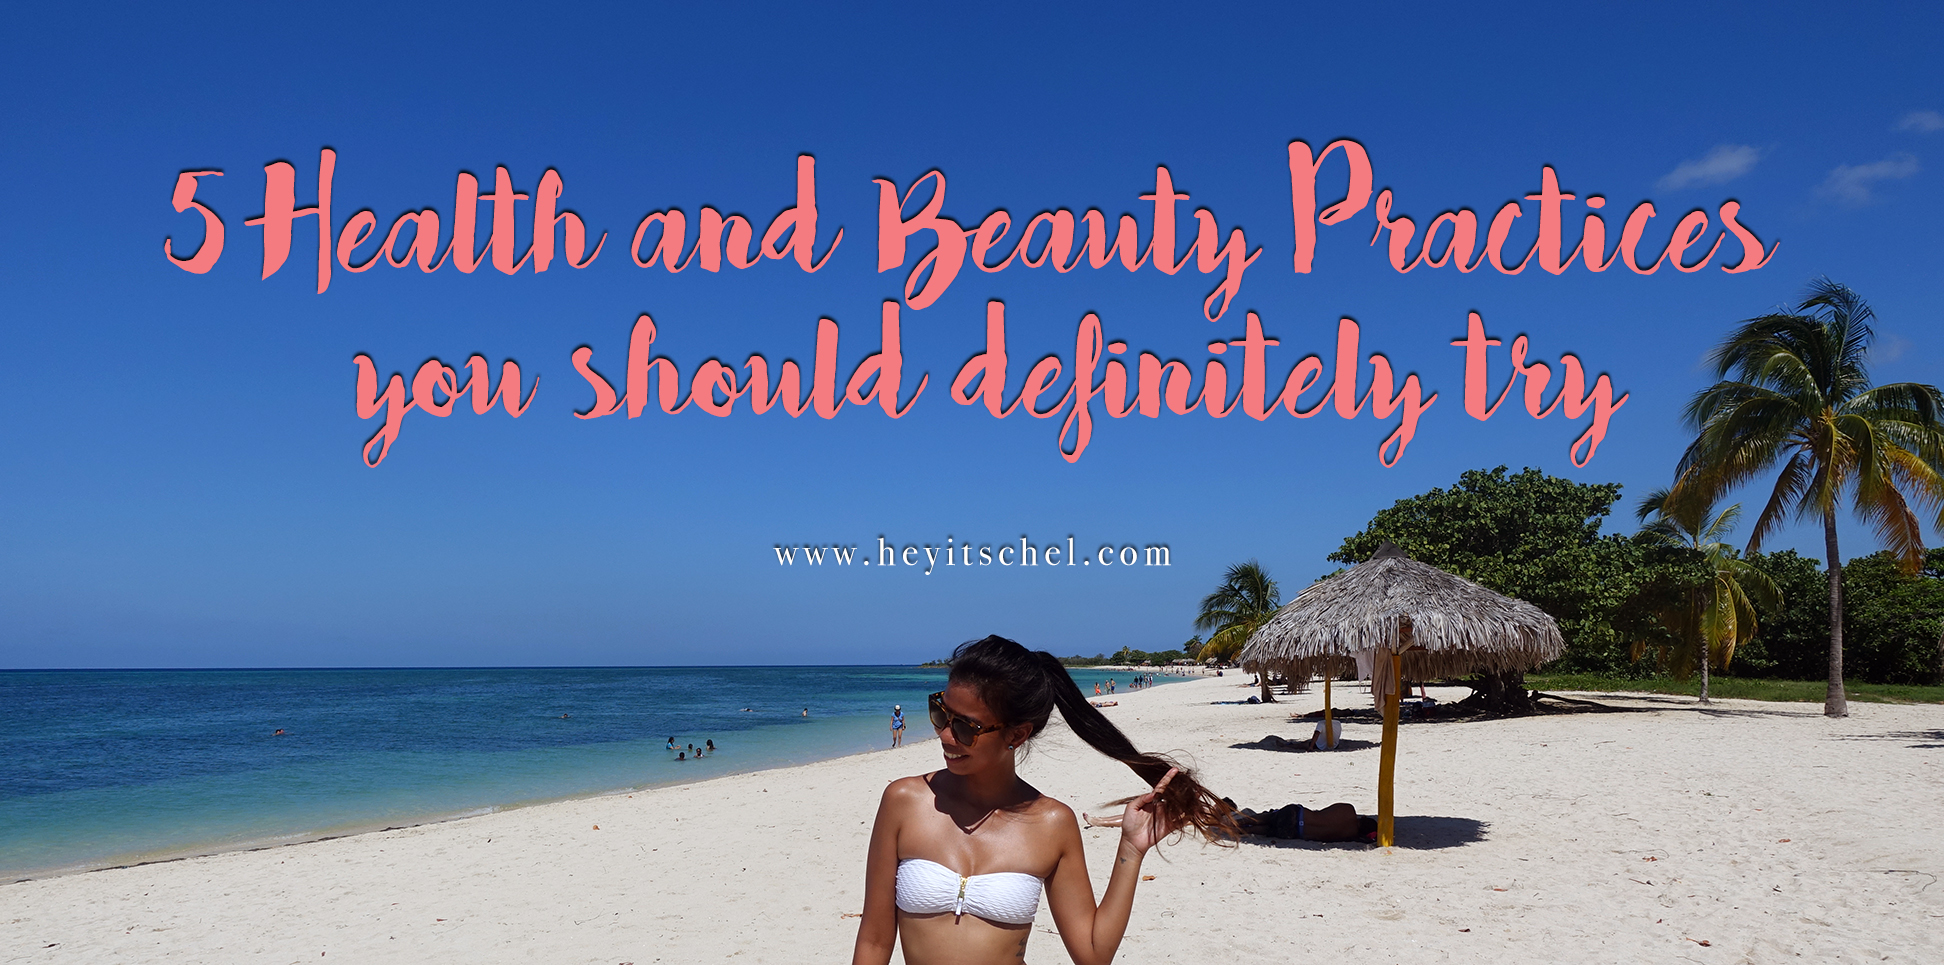 5 Health and Beauty Practices You Should Definitely Try